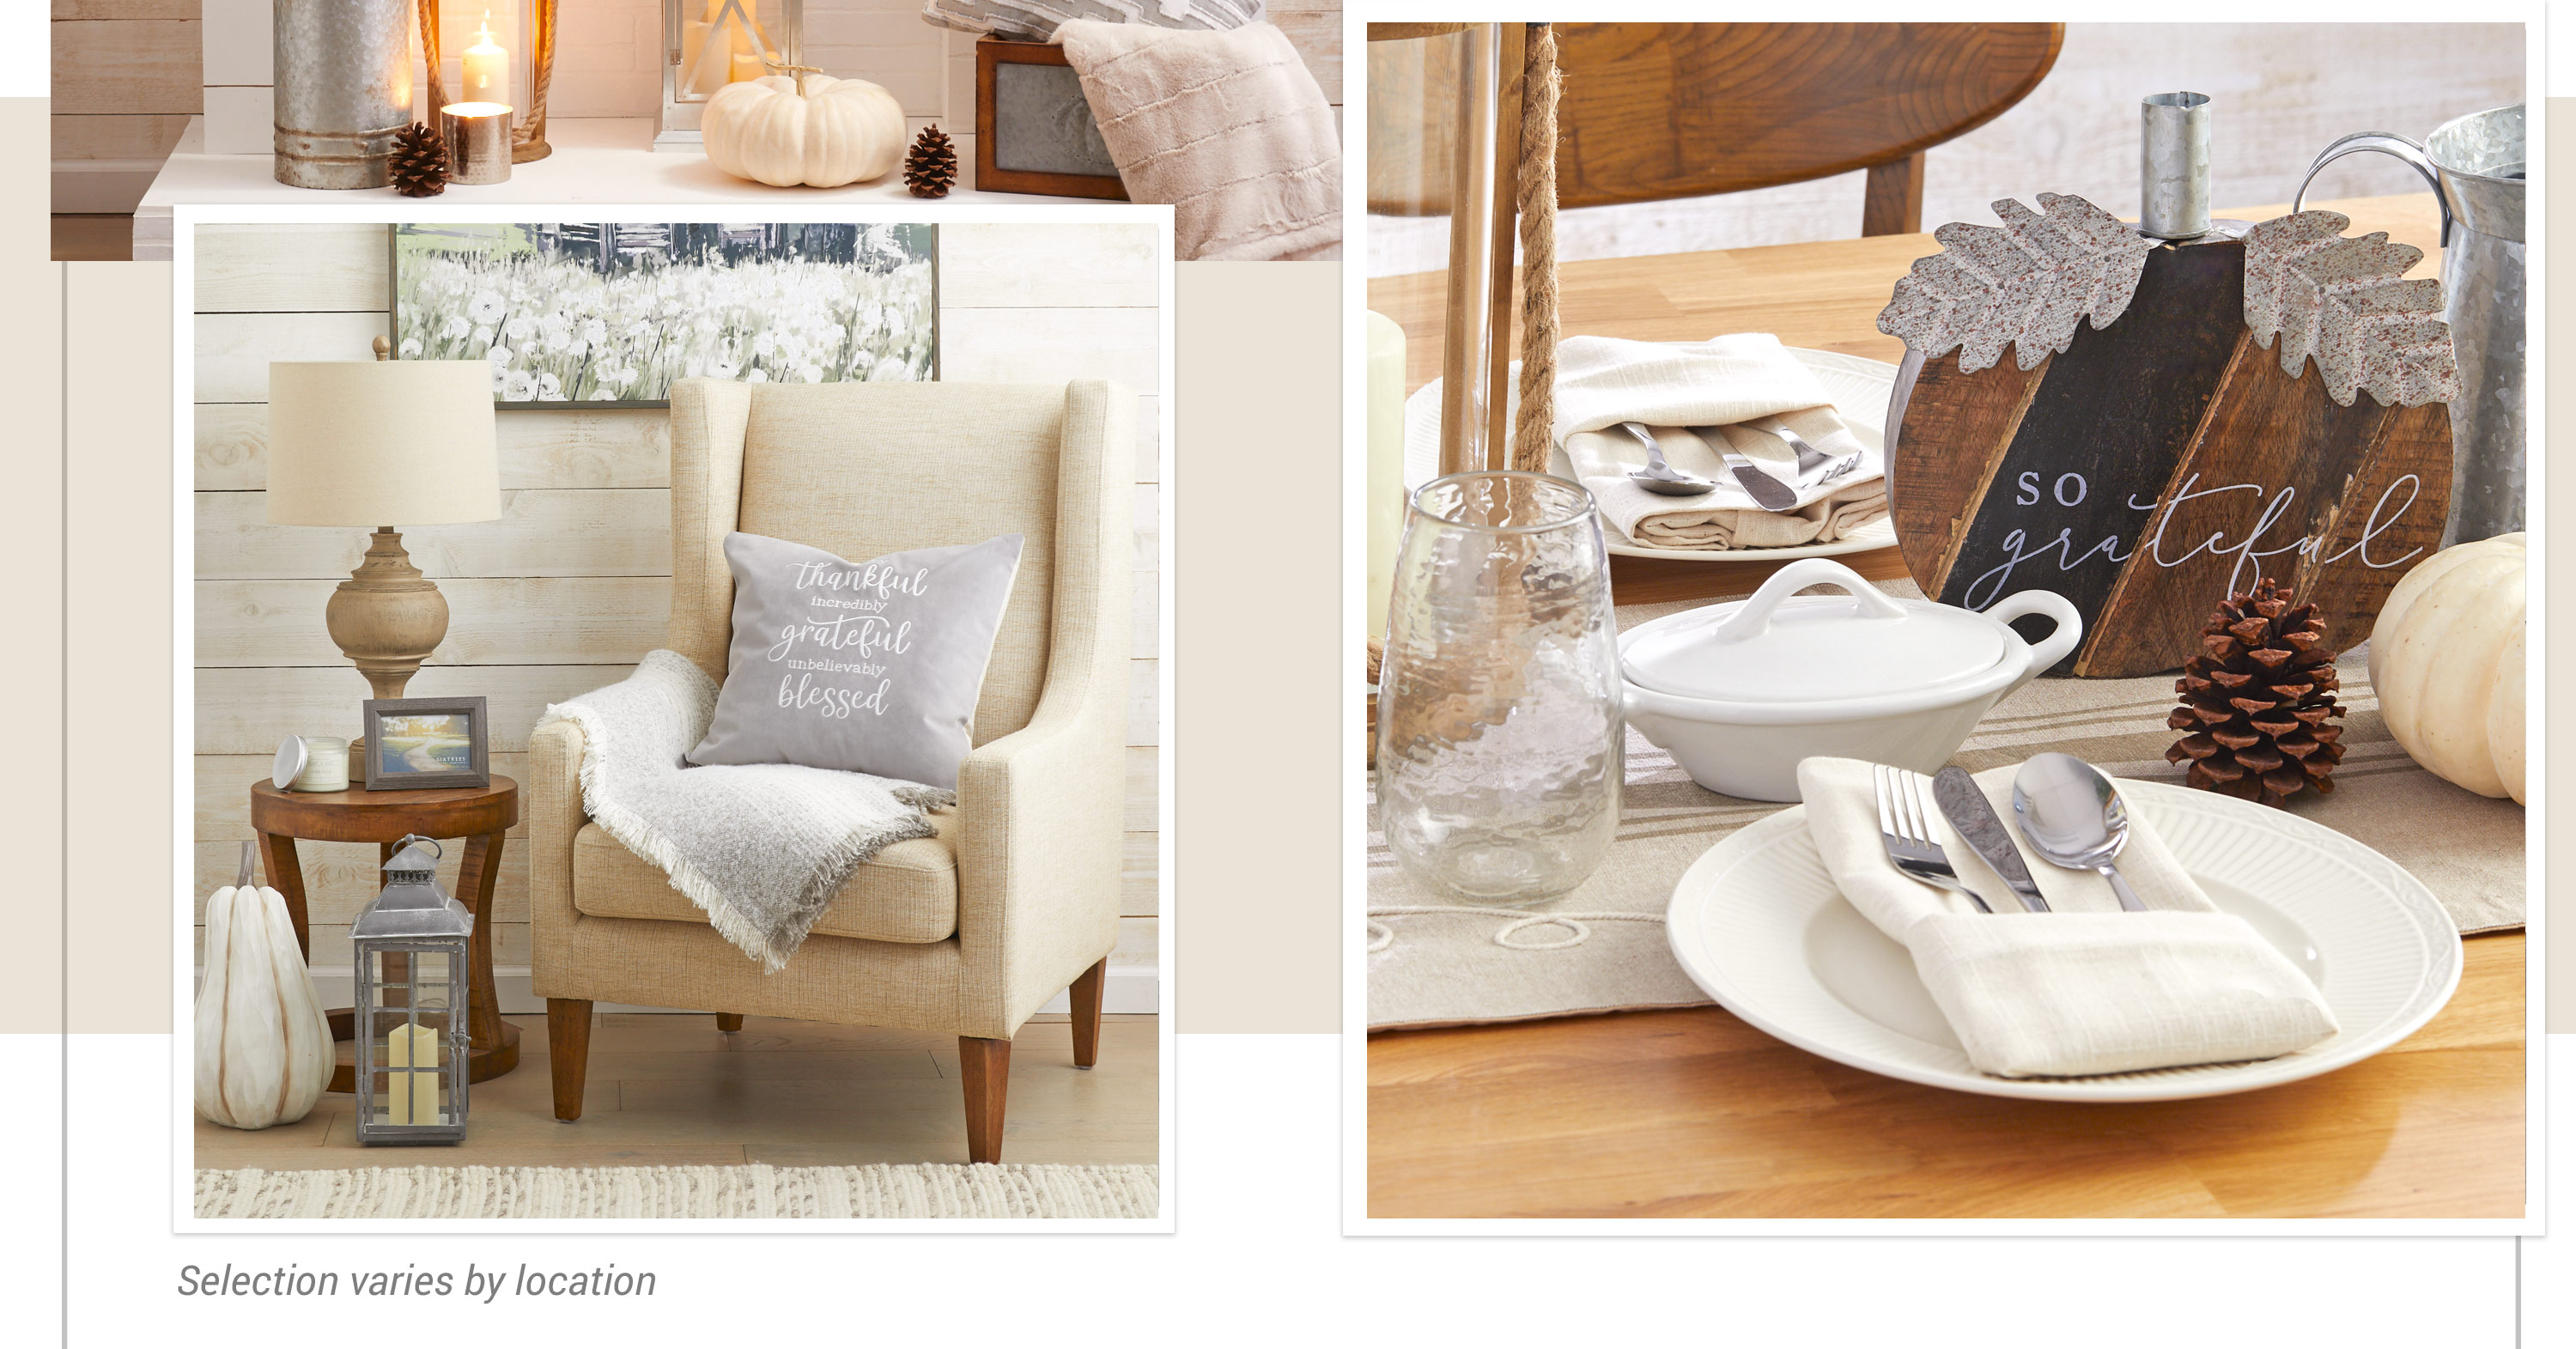 Essence of Autumn - Cinnamon and gold accents on a neutral palette offer a subtle hint of autumn warmth.